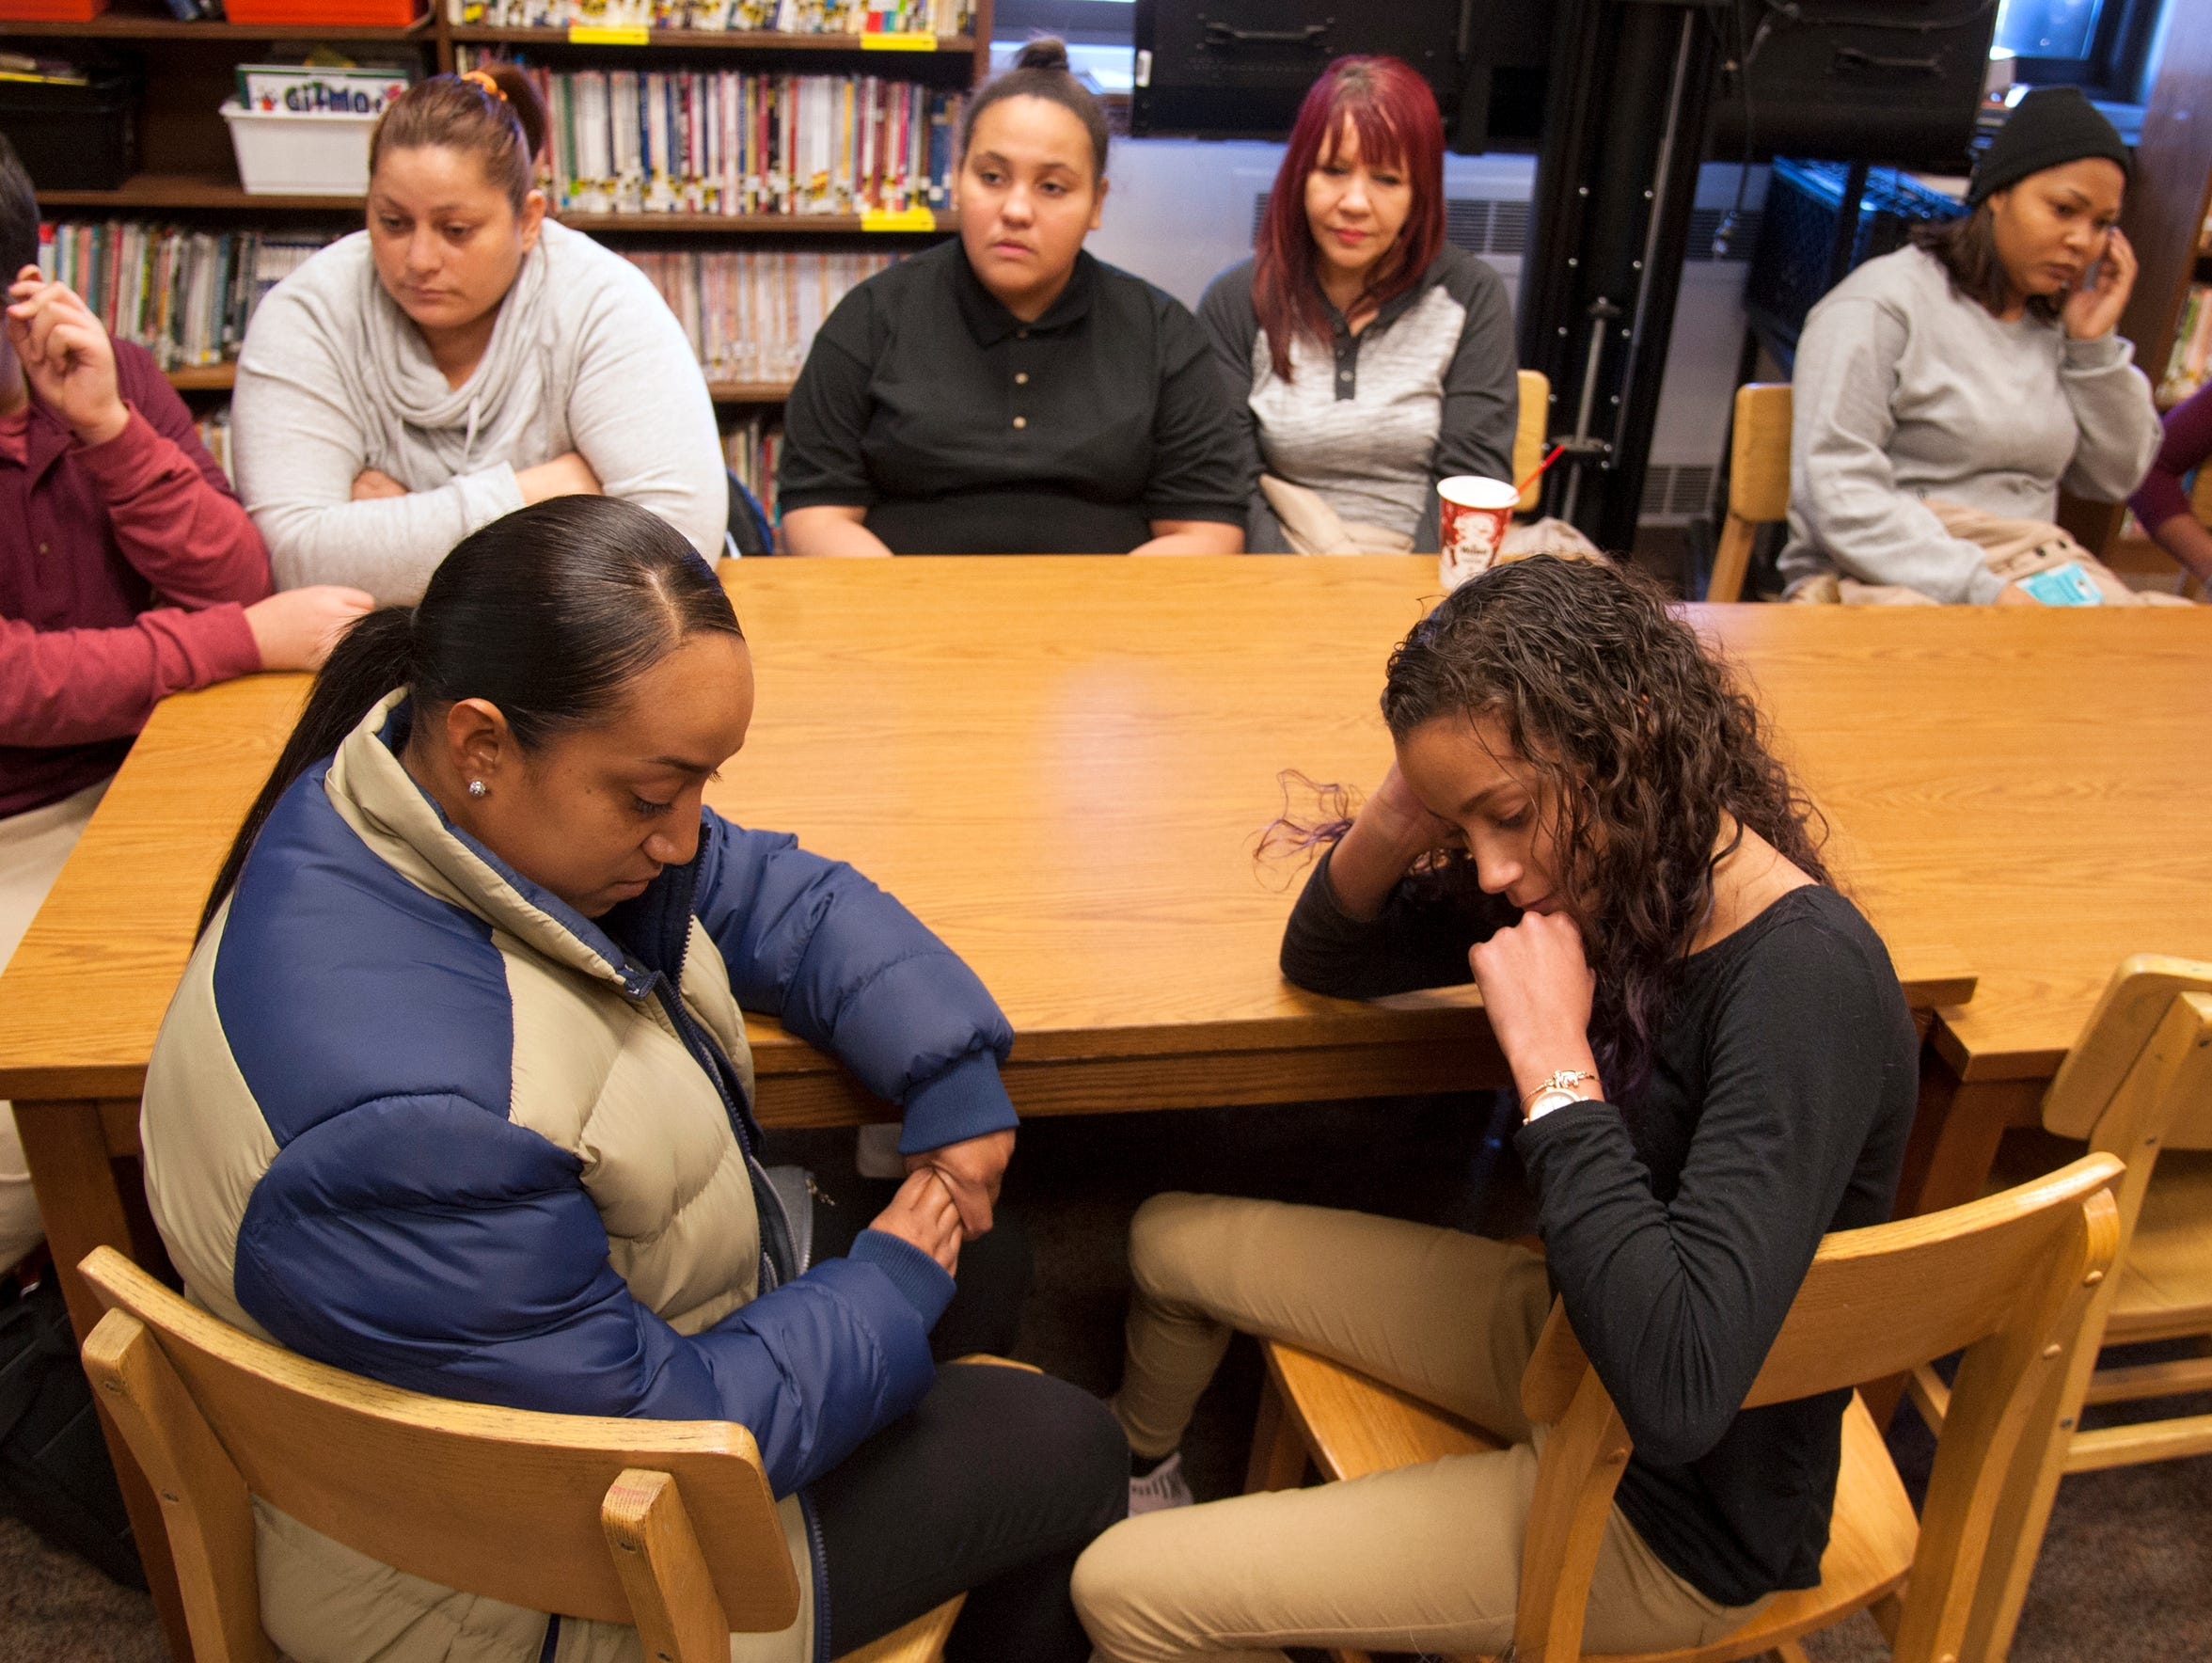 Students from Puerto Rico, who currently attend the Veteran's Memorial School in Camden after being displaced by Hurricane Maria, sit with their mothers in the school's library.